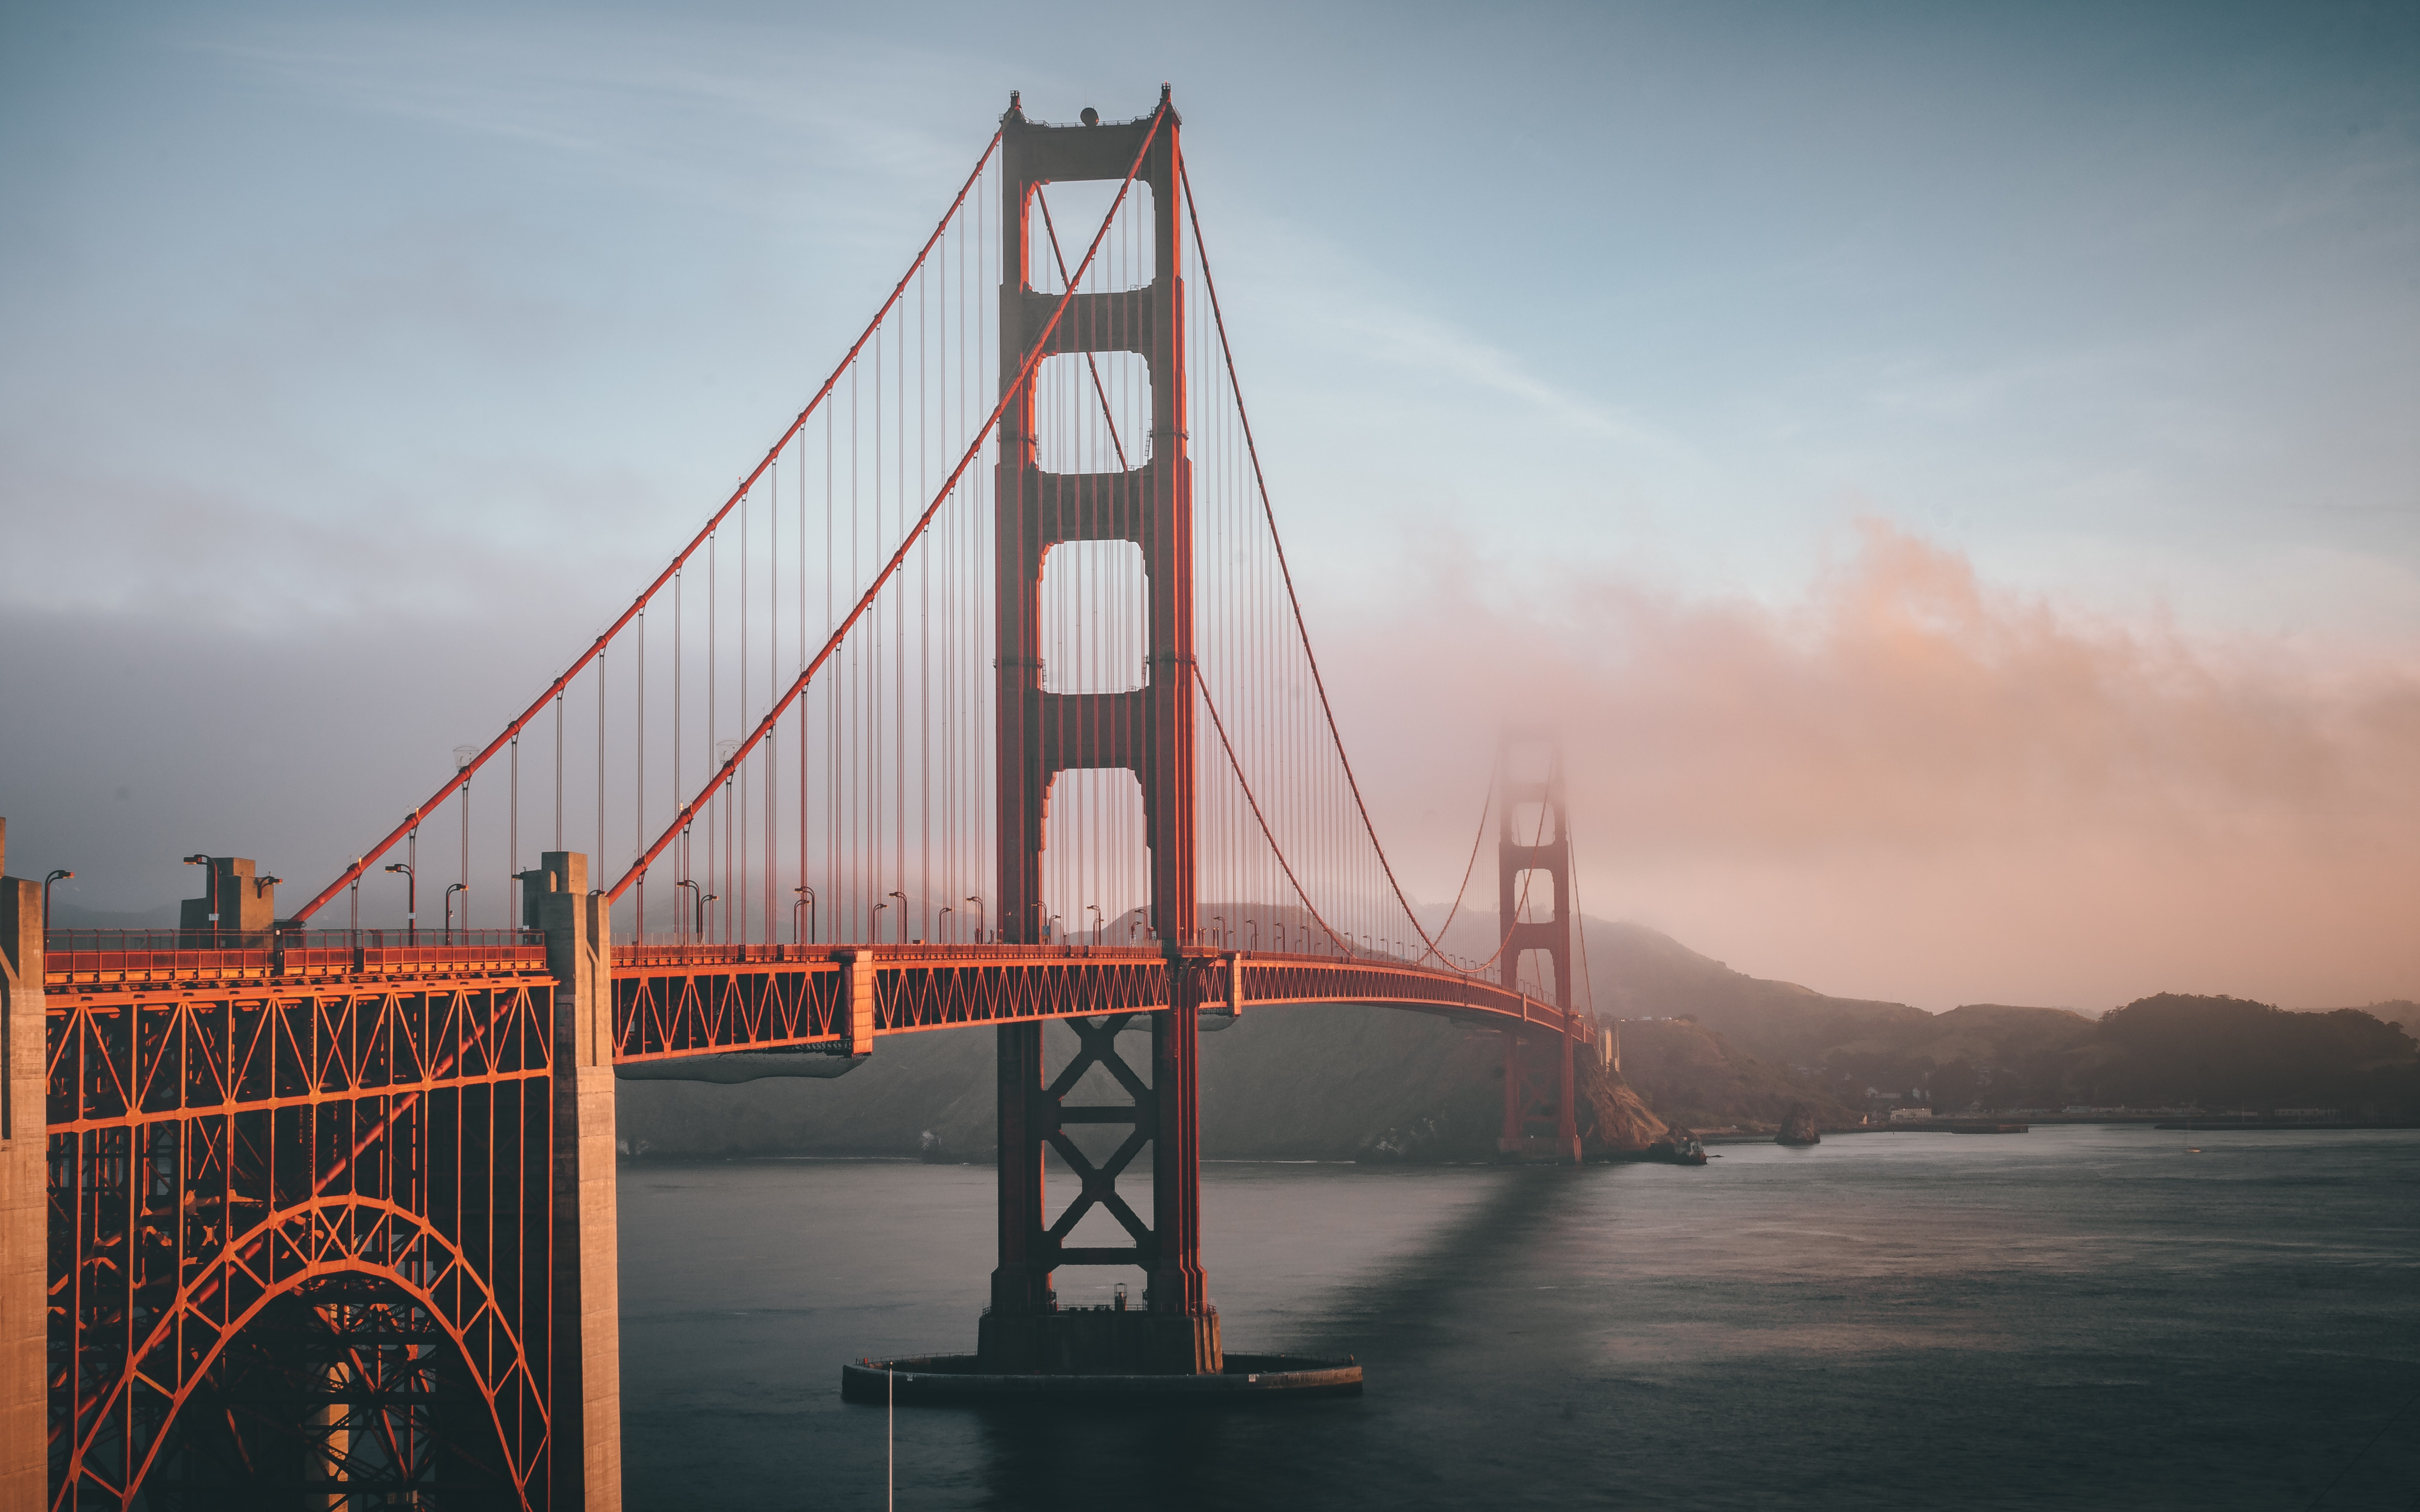 5120x2880 Golden Gate Bridge 5k 5k Hd 4k Wallpapers Images Backgrounds Photos And Pictures